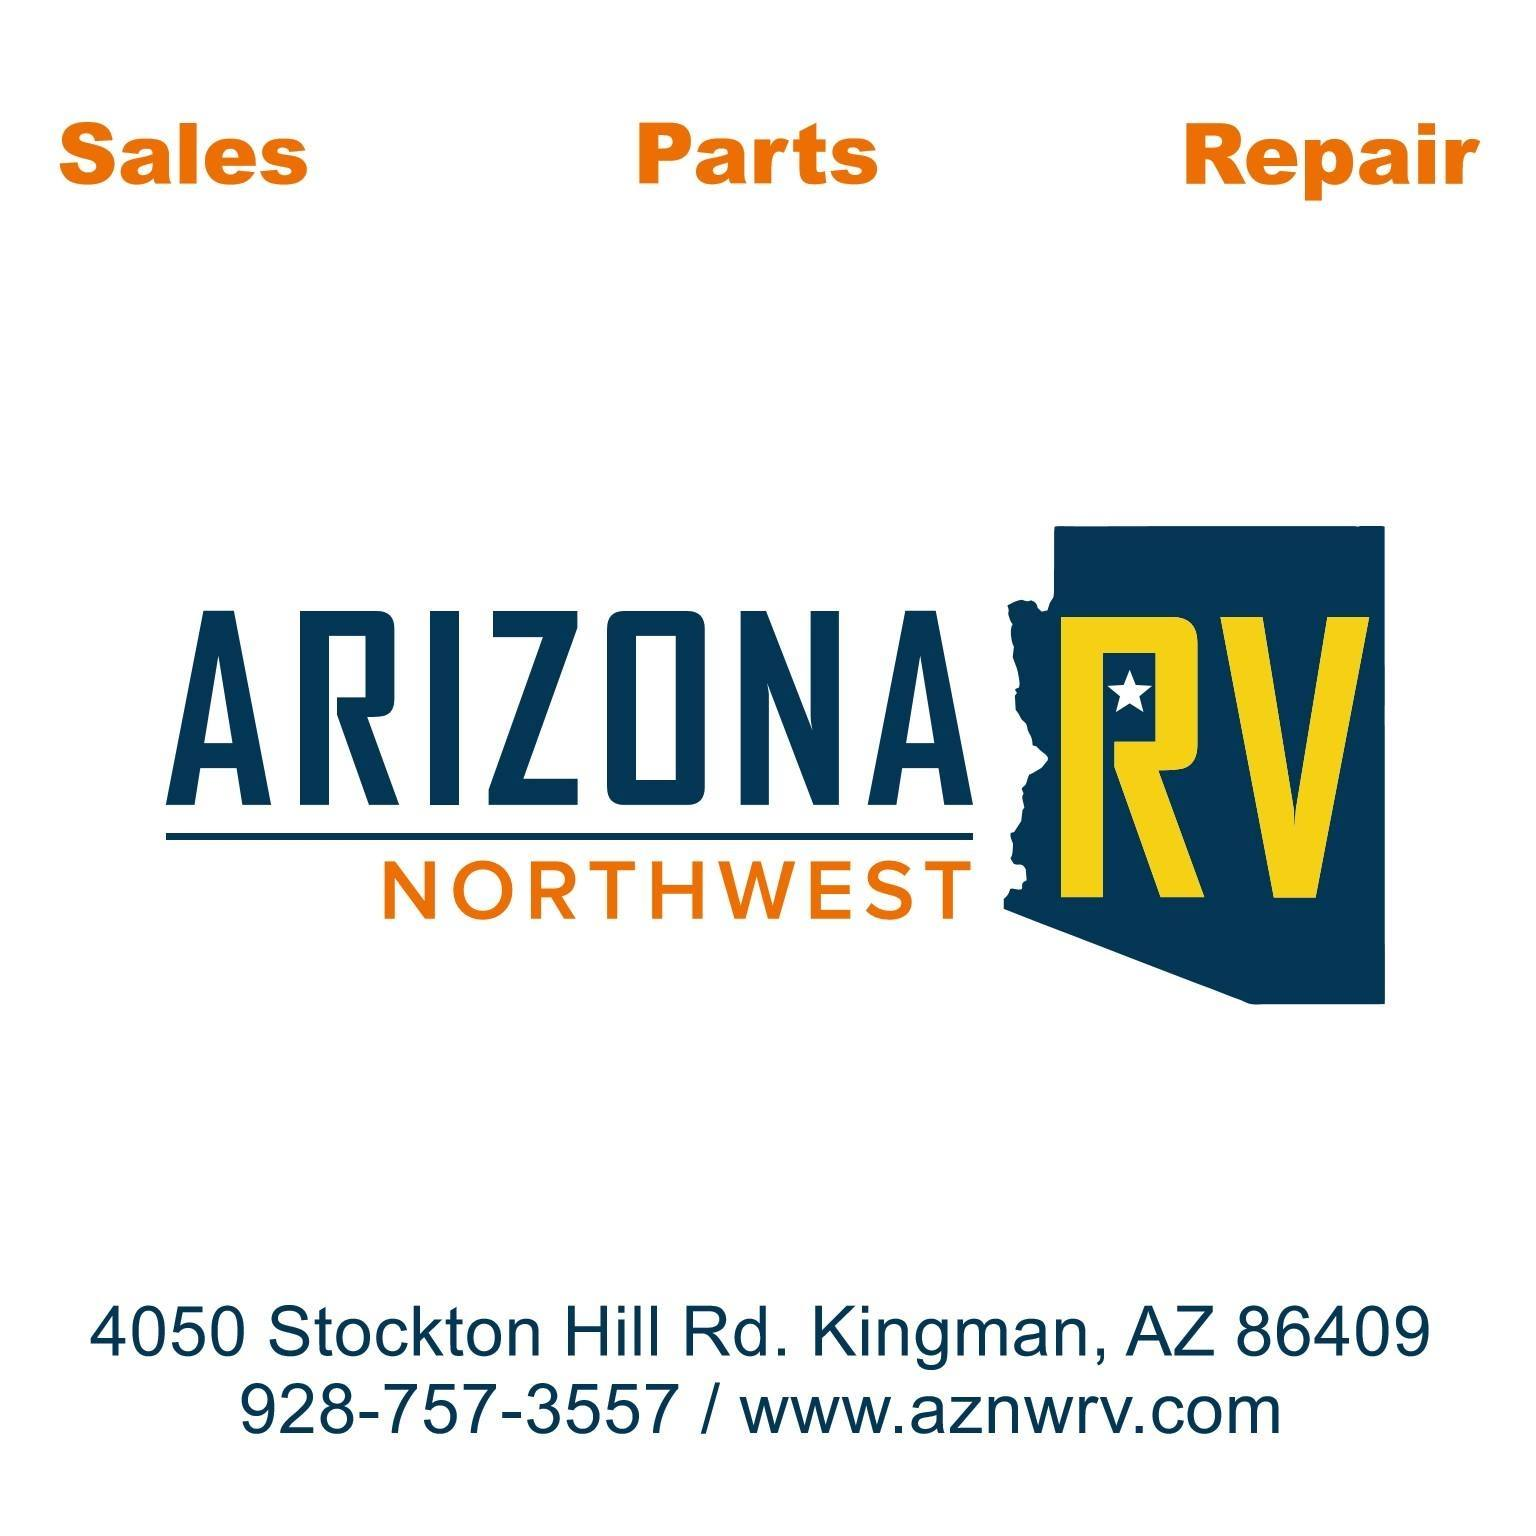 Arizona Northwest RV logo